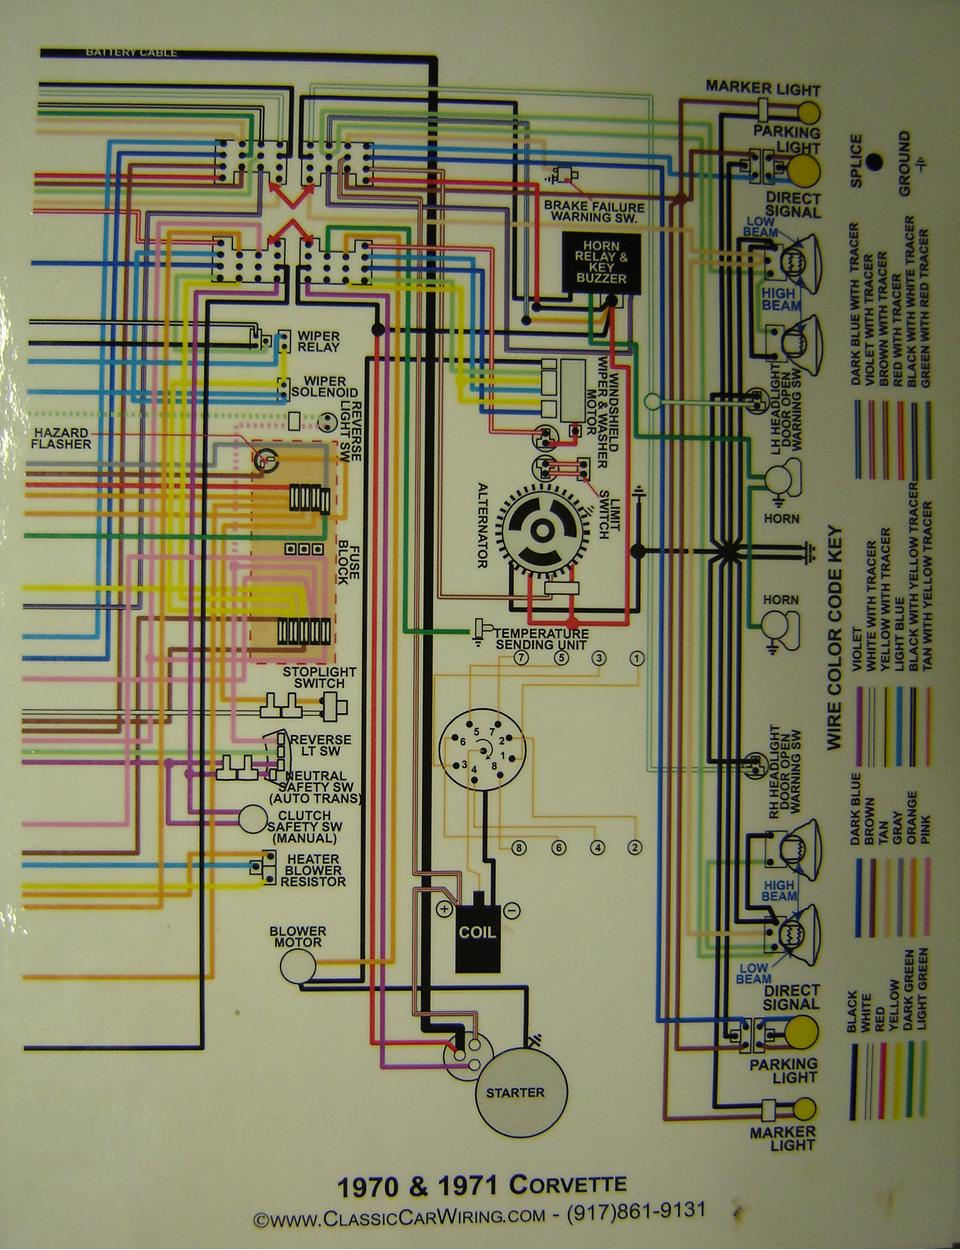 1970 71 corvette color wiring diagram B chevy diagrams 1989 corvette engine wiring harness at readyjetset.co